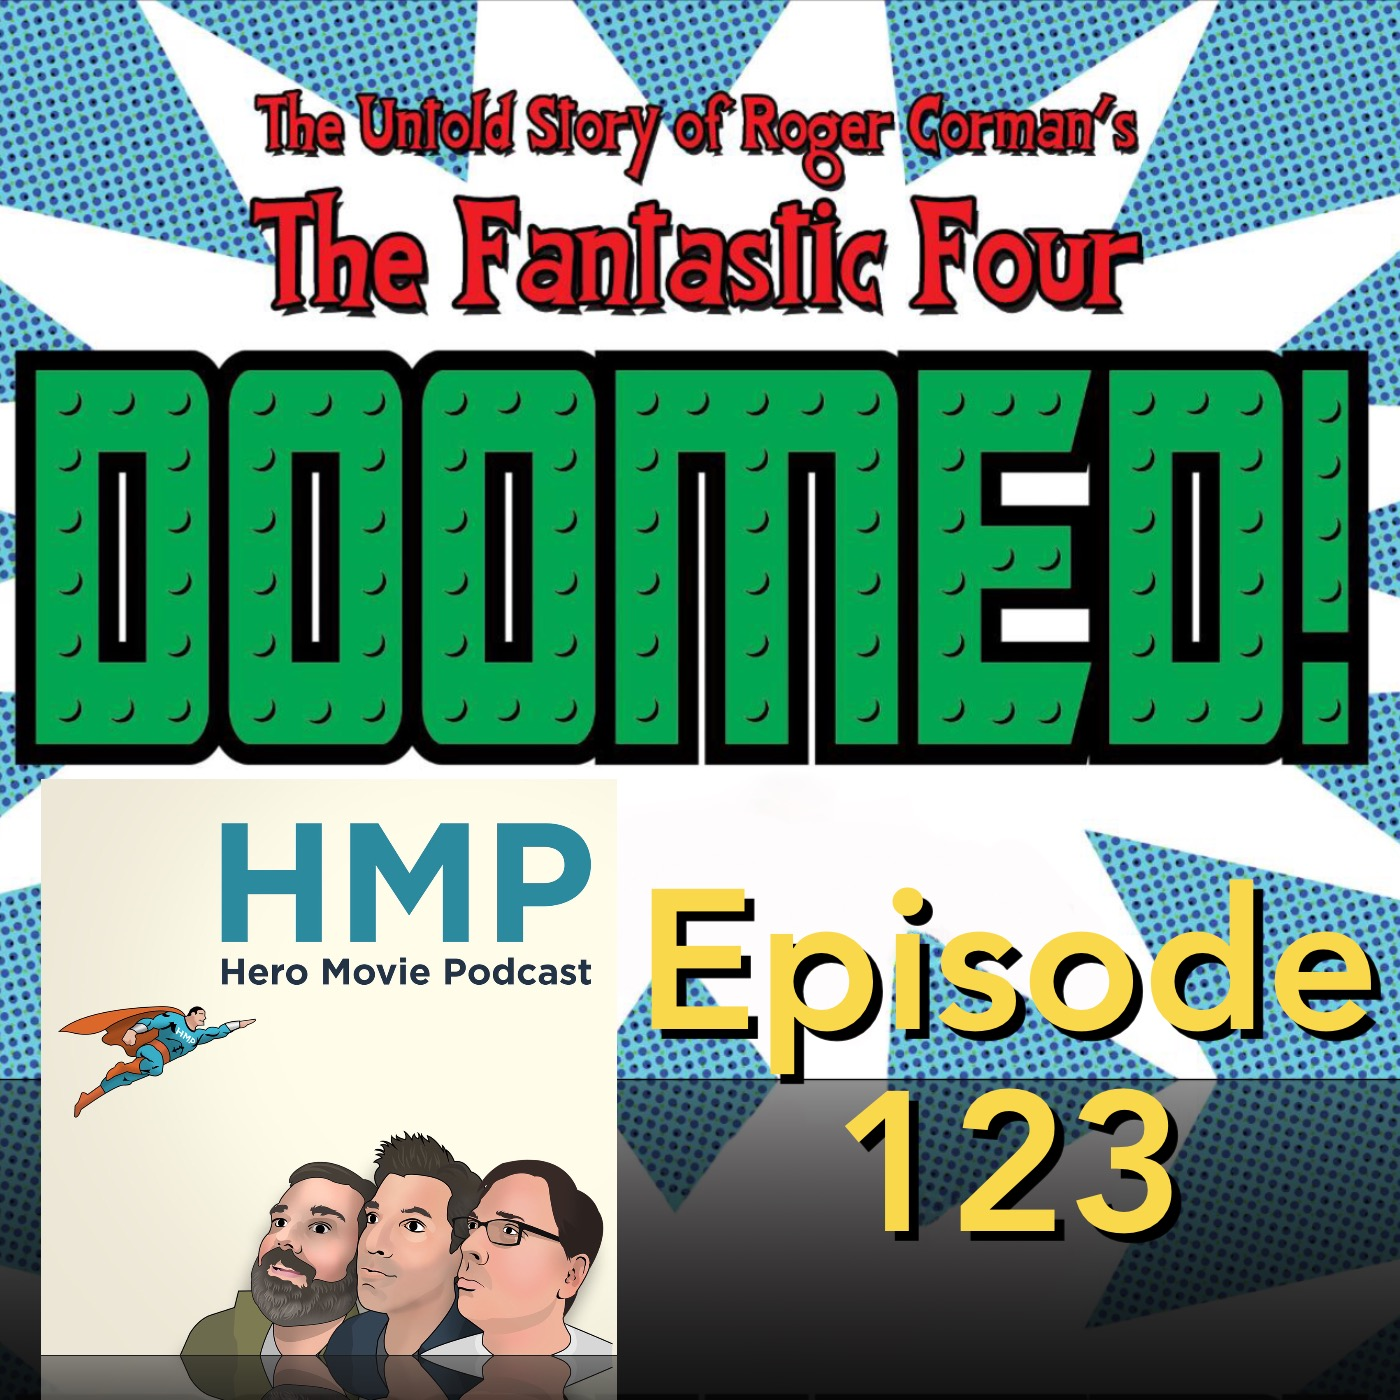 Episode 123- Doomed! The Untold Story of Roger Corman's Fantastic Four